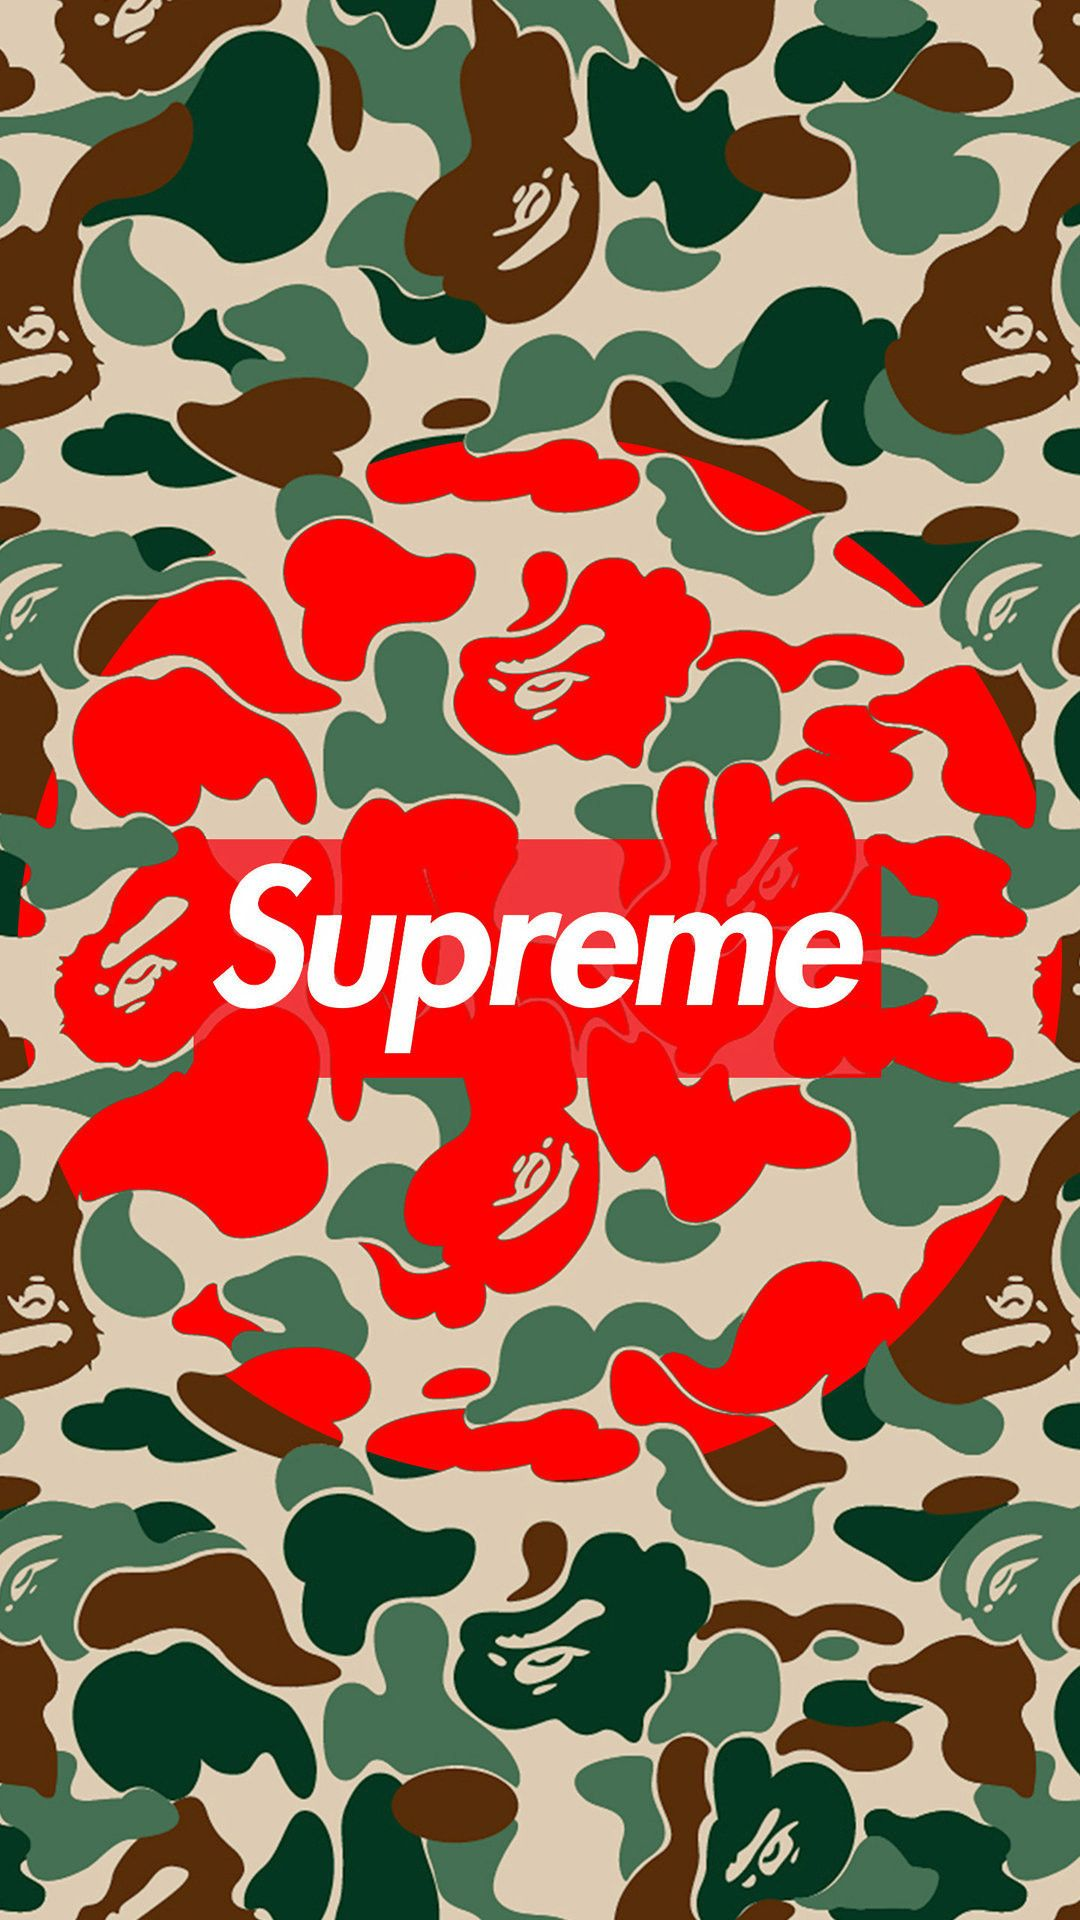 Bape Iphone Hd Wallpapers Top Free Bape Iphone Hd